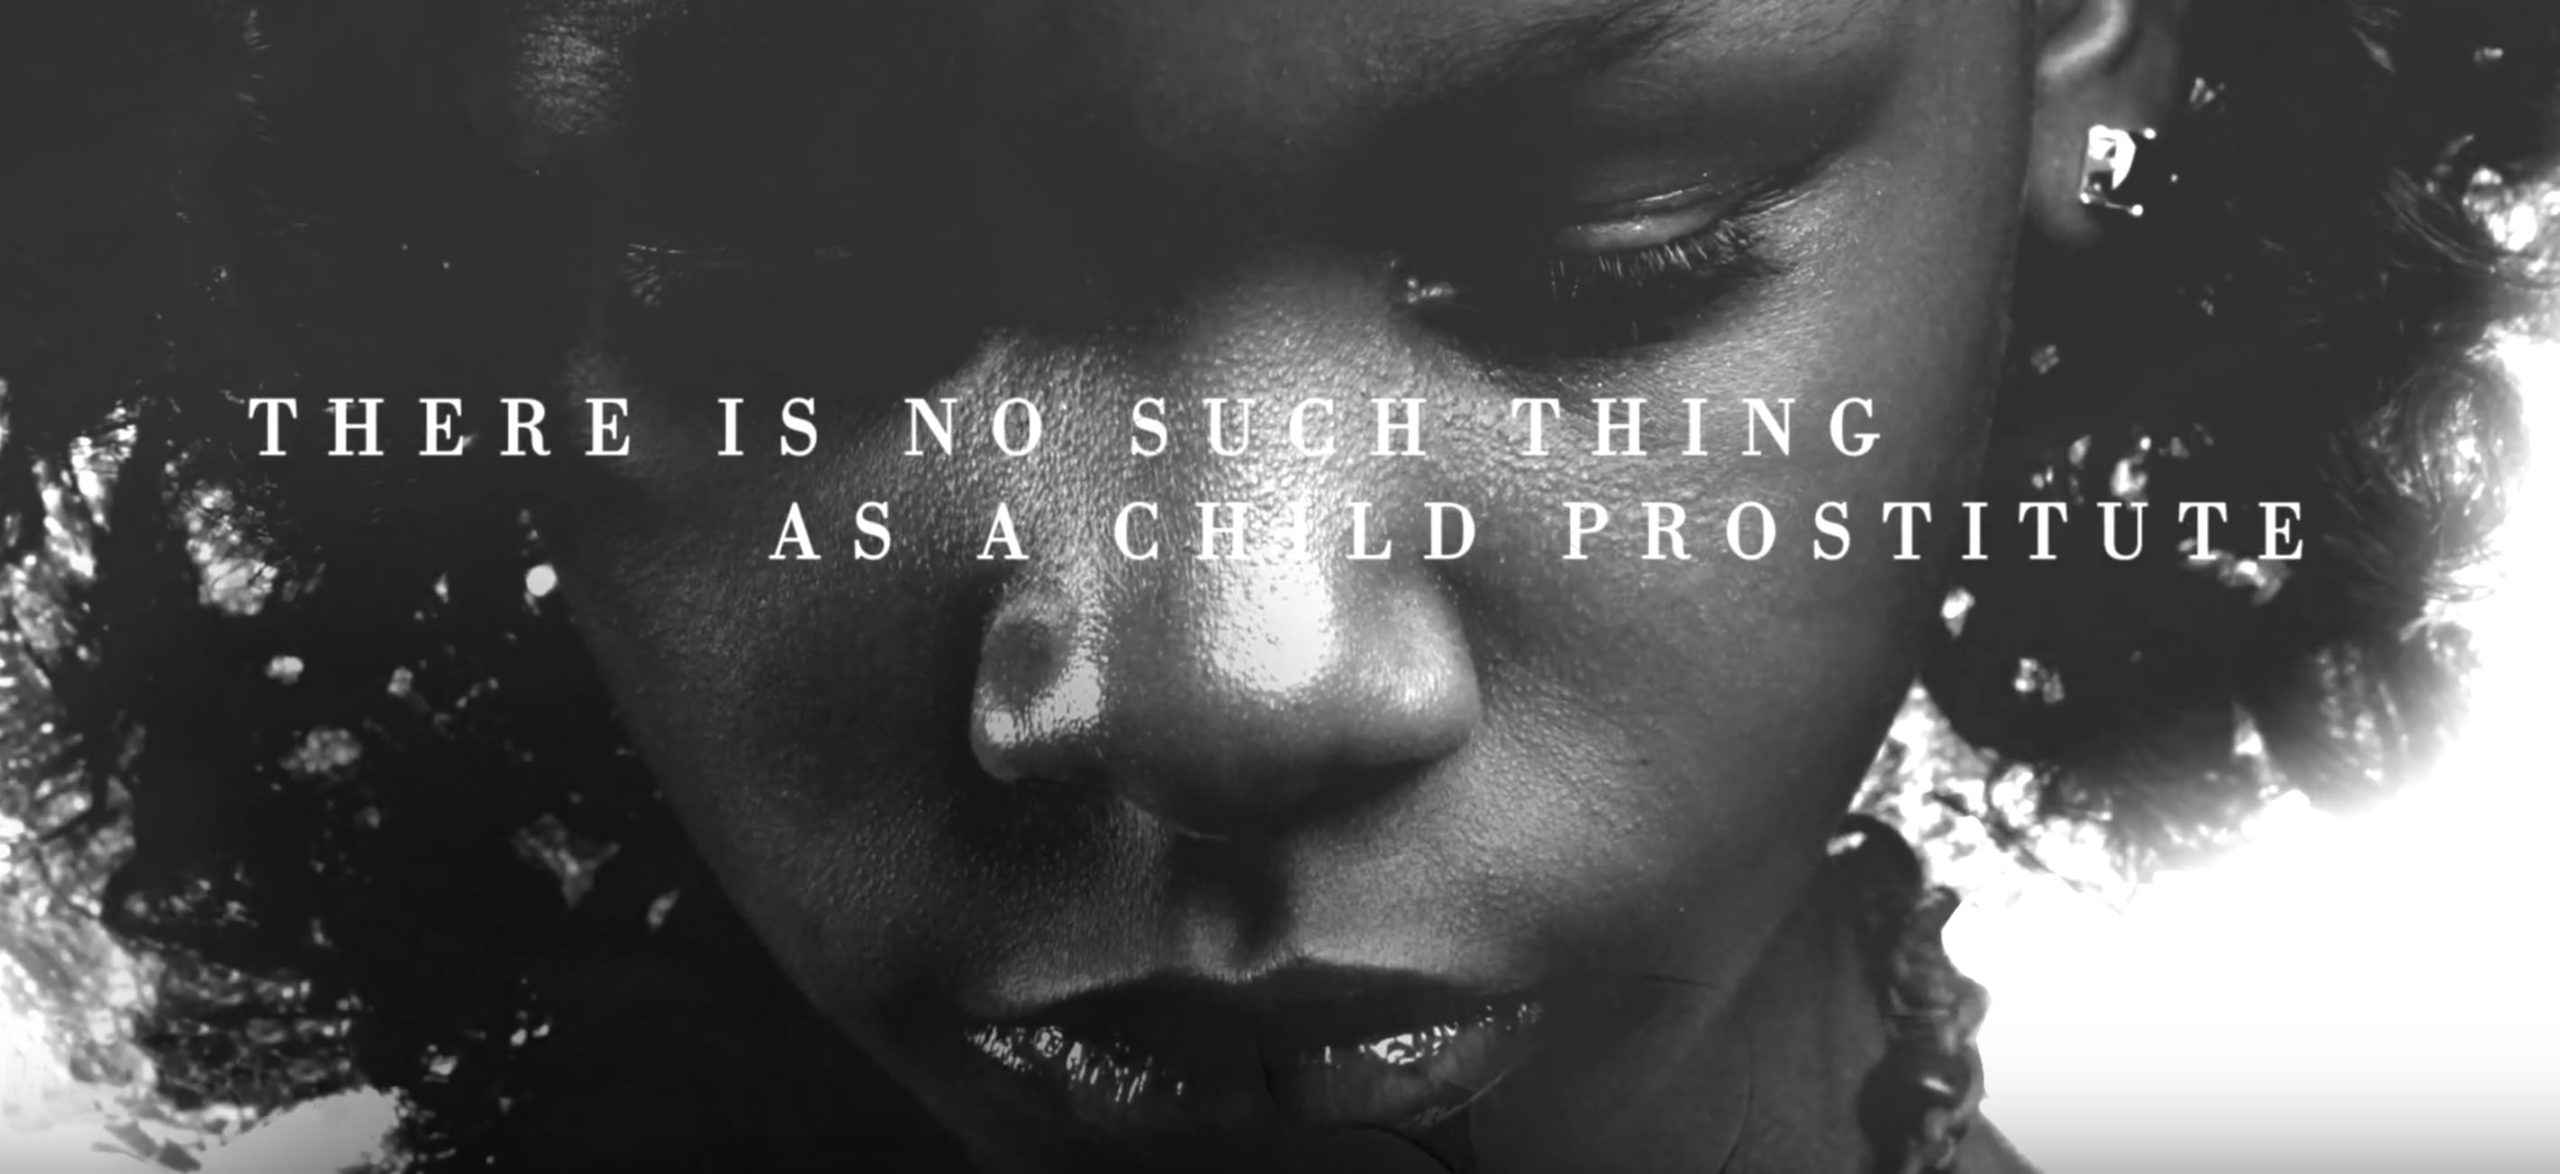 There is no such thing as a child prostitute...